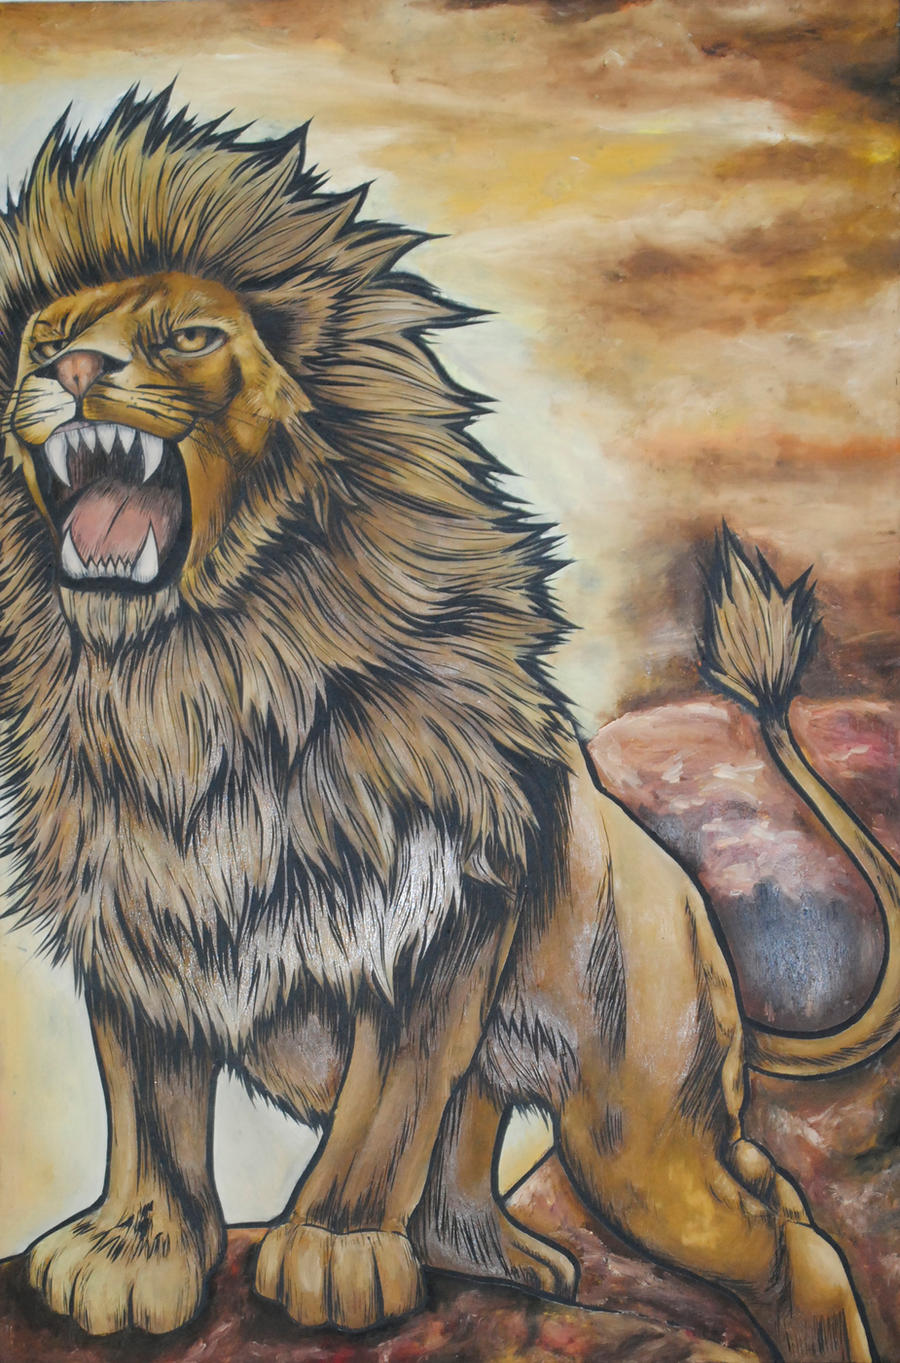 Nemean lion drawing - photo#23